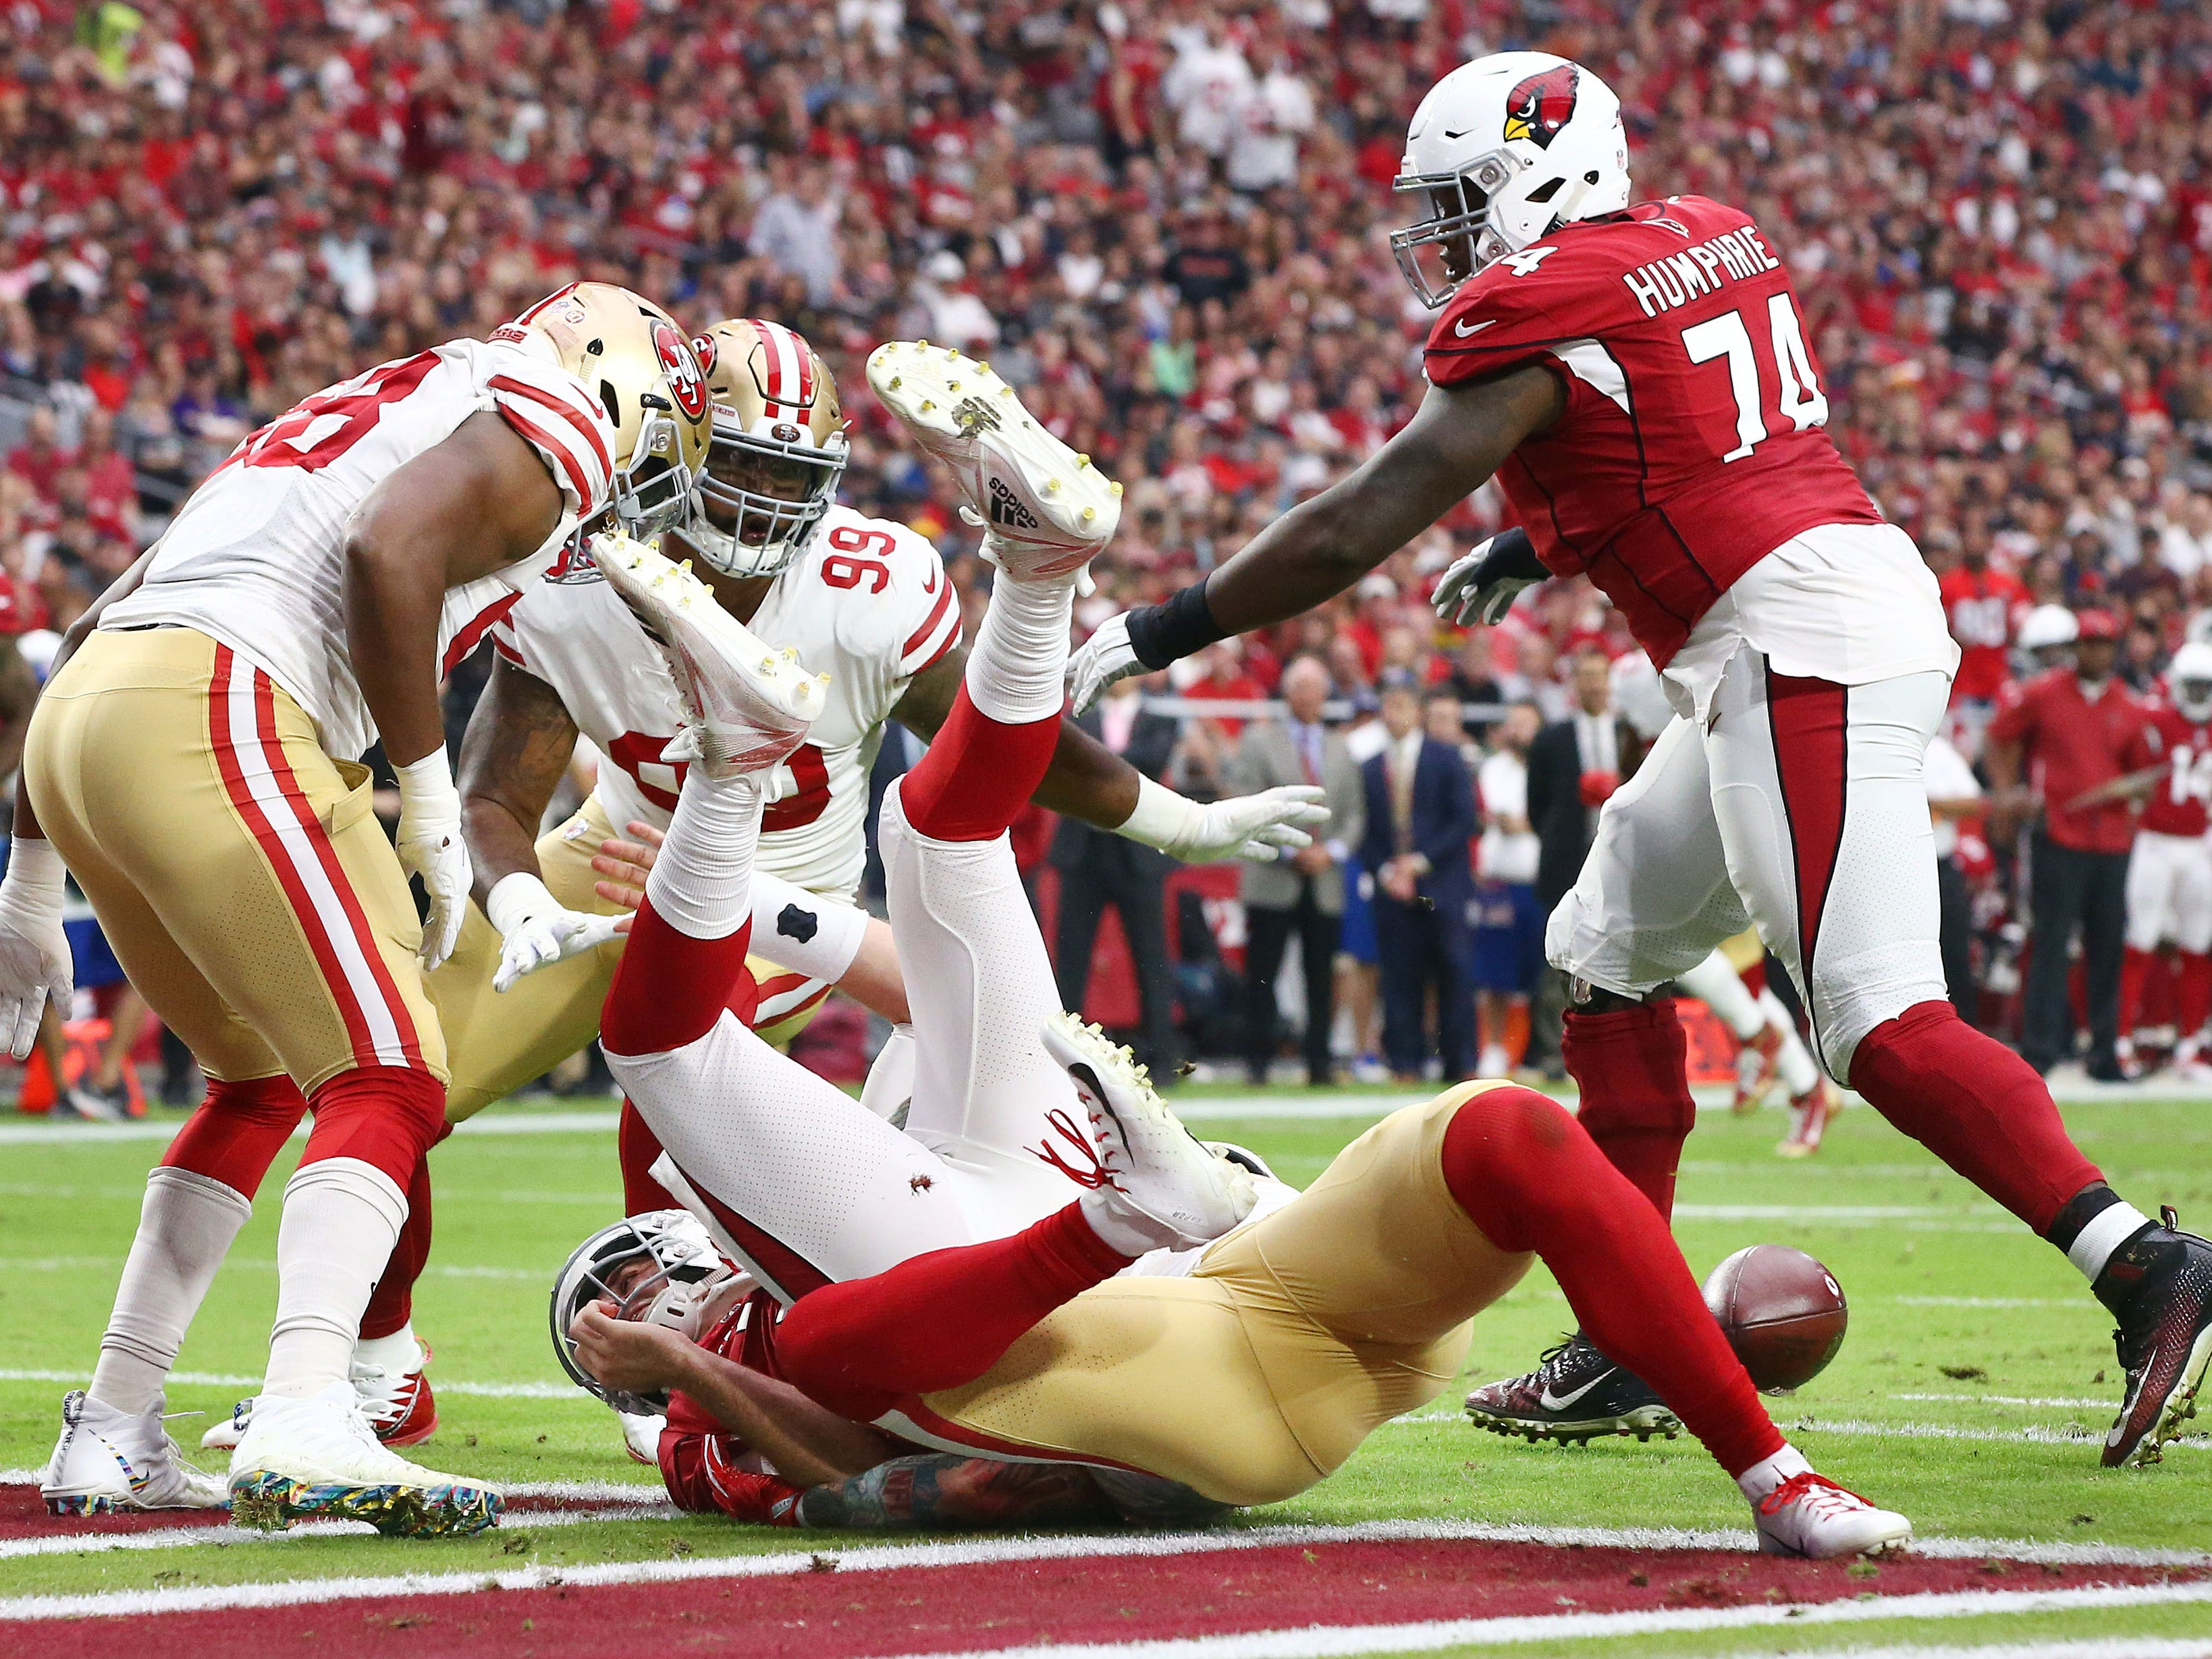 Arizona Cardinals quarterback Josh Rosen ntentionally grounded the ball in the end zone giving a safety to the San Francisco 49ers in the first half during a game on Oct. 28 at State Farm Stadium.